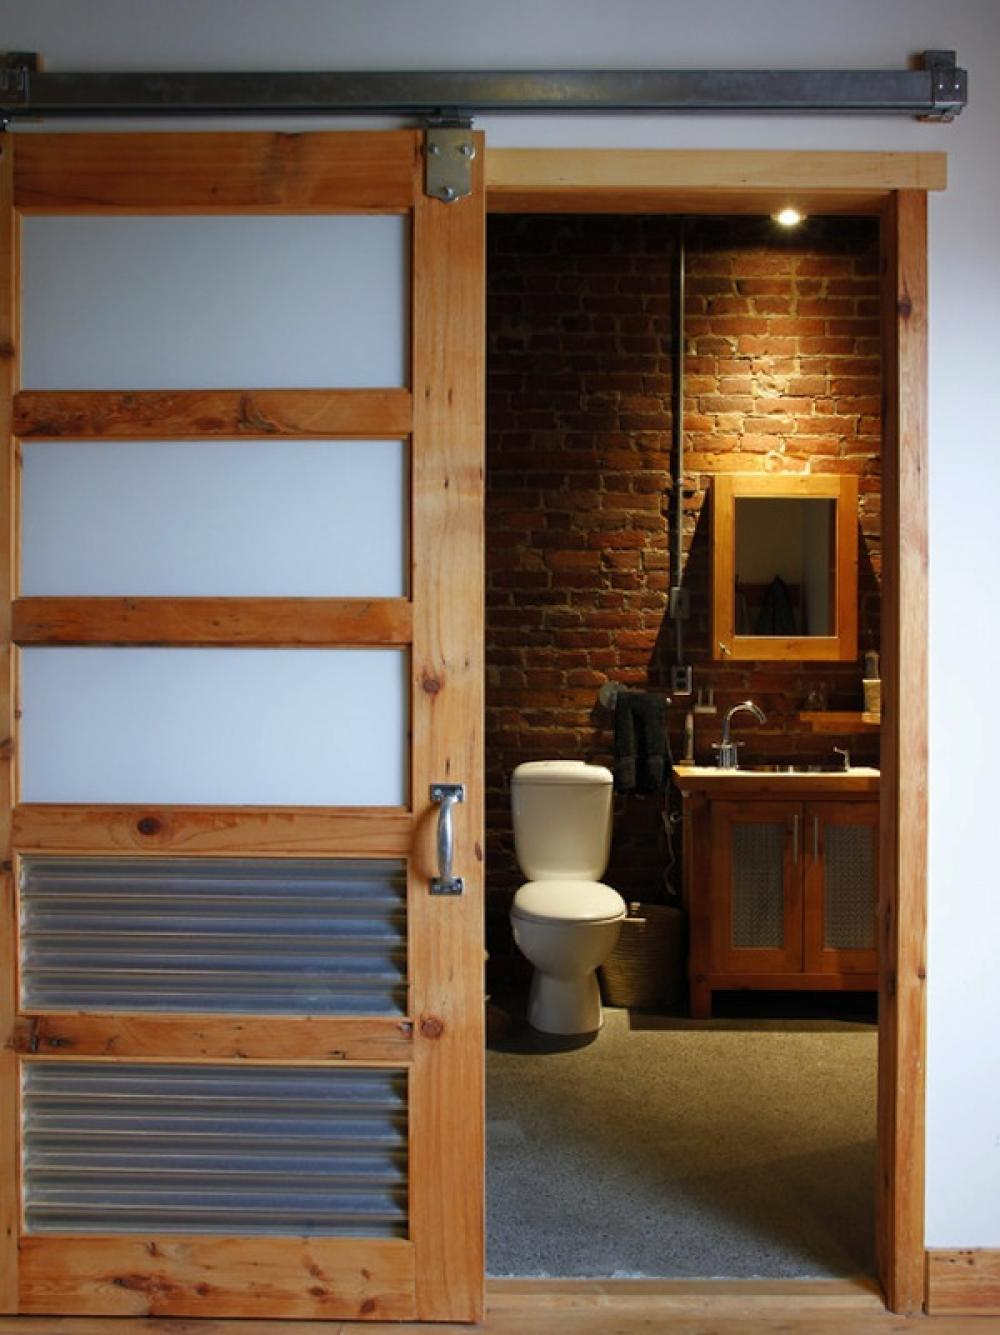 Insulated interior door ideas are developed by highly experienced designers